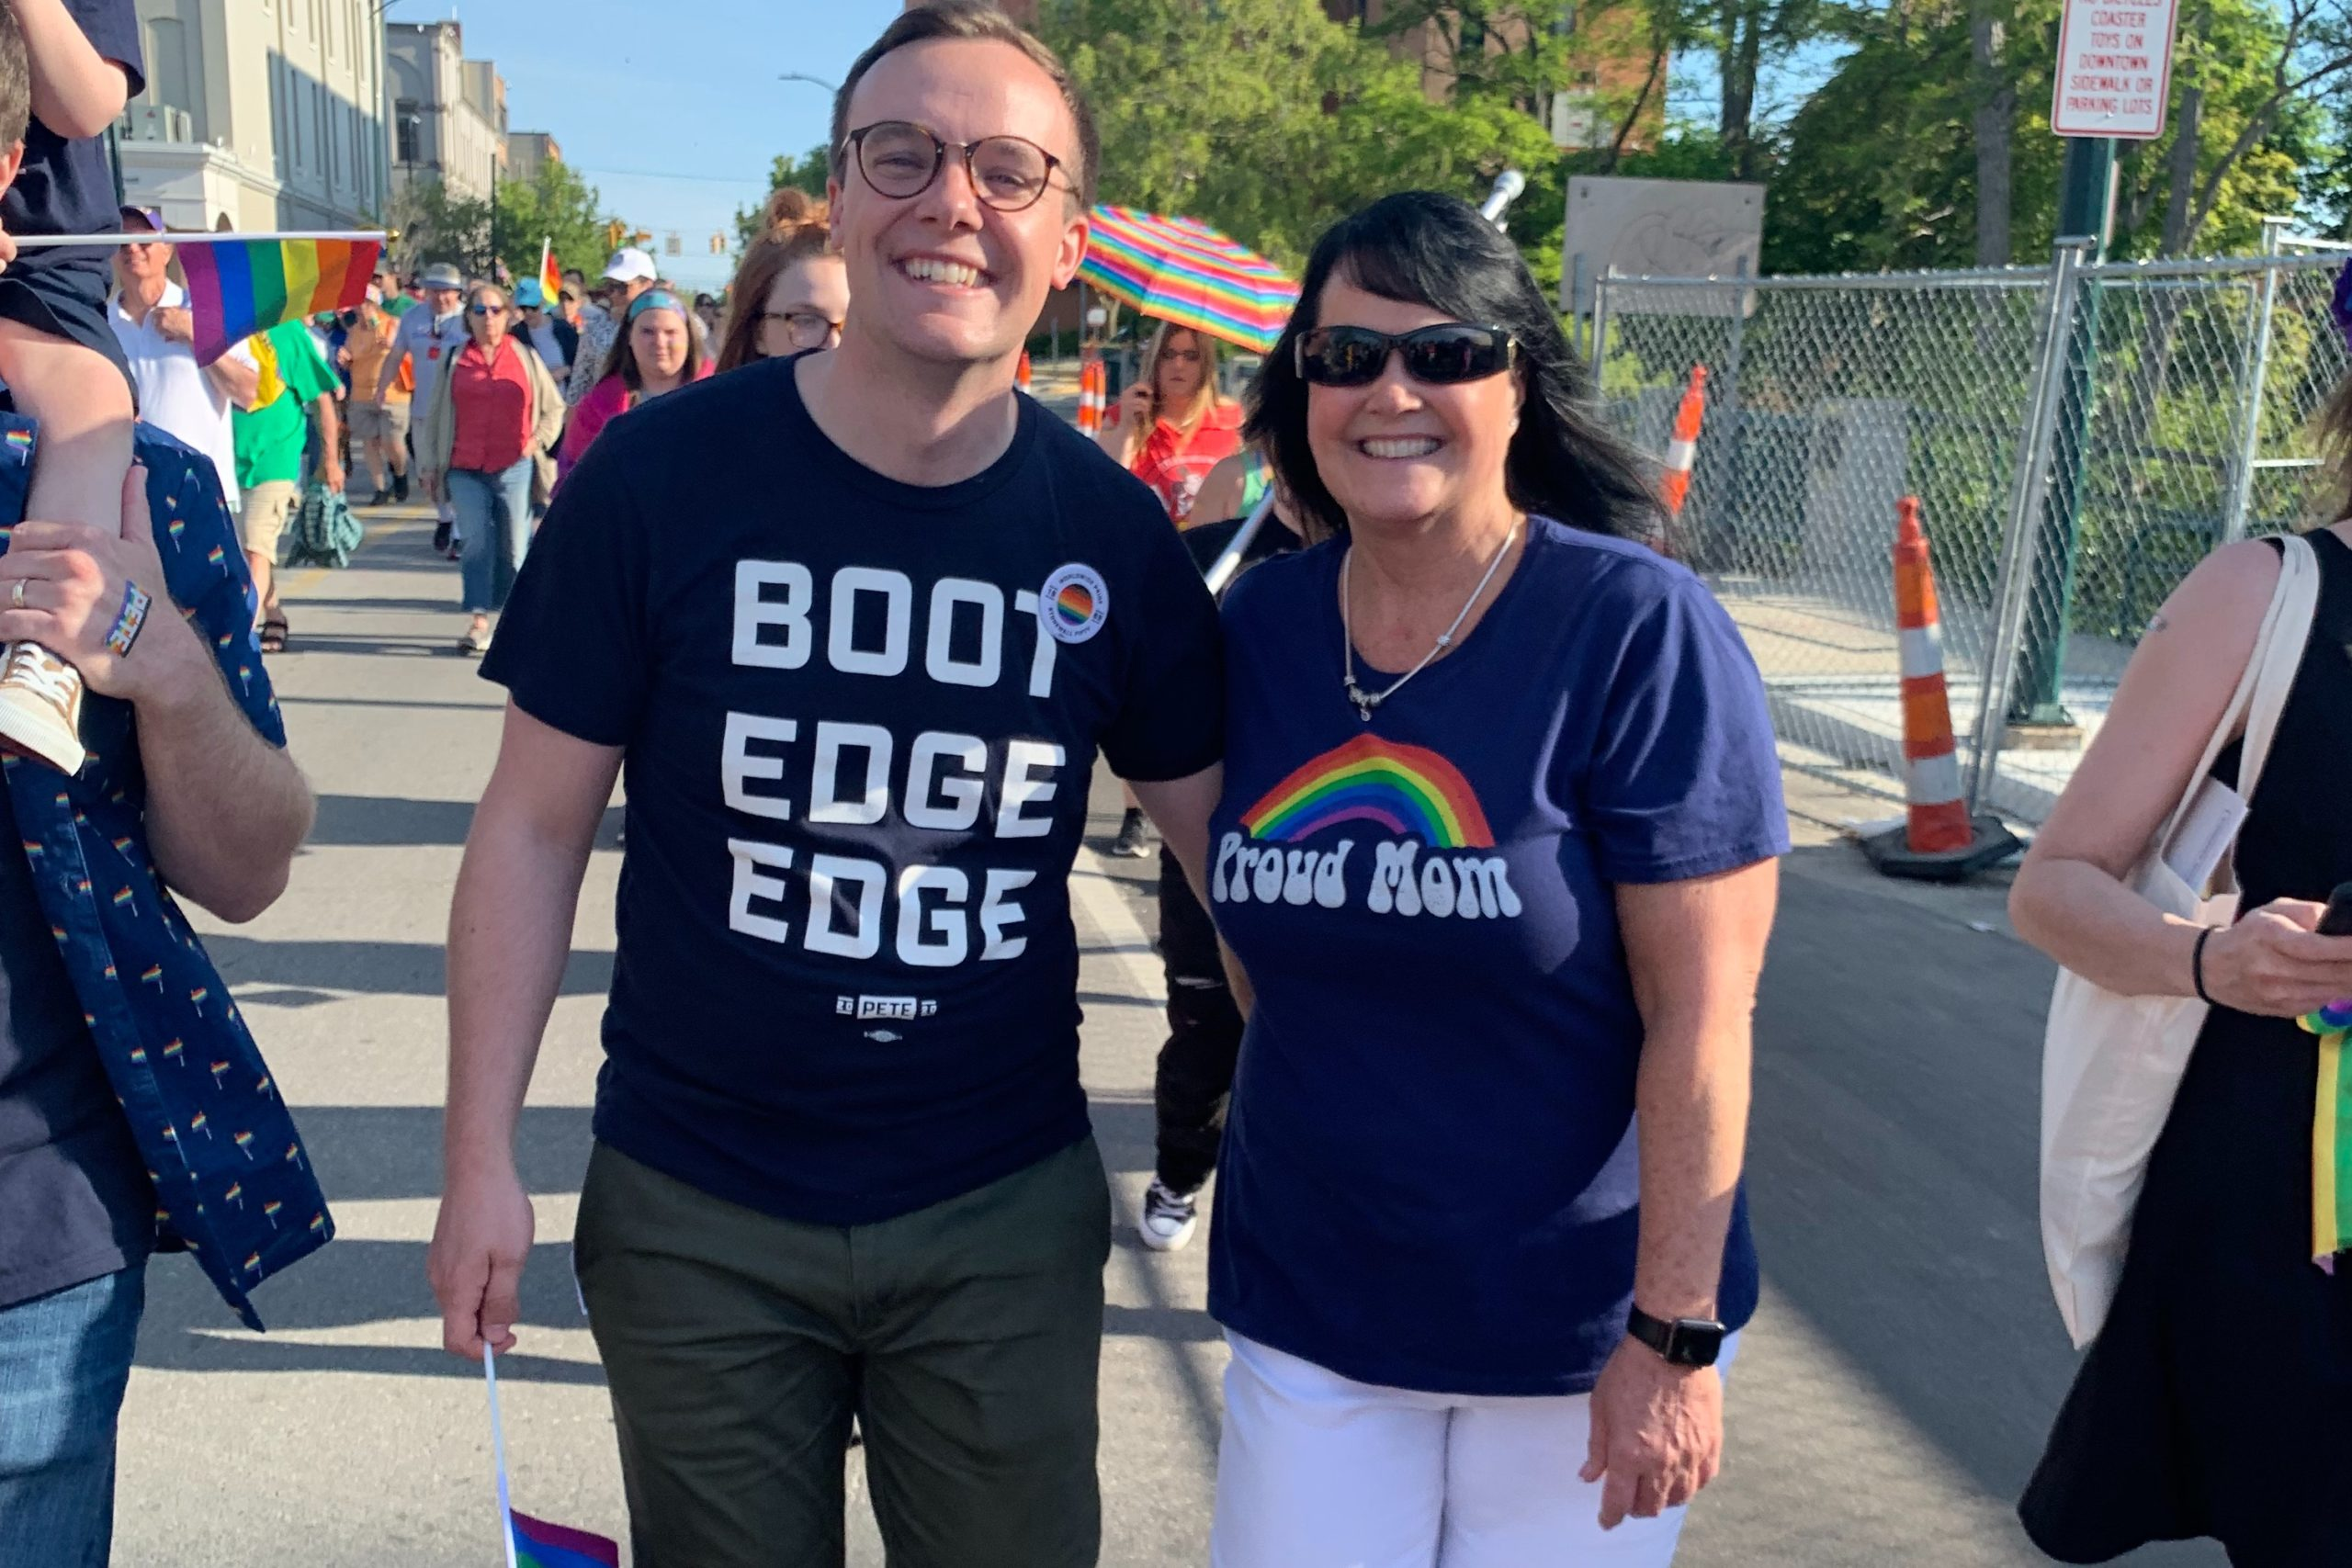 Pride in Pictures: Chasten Buttigieg feels pure joy marching hand in hand with his mom